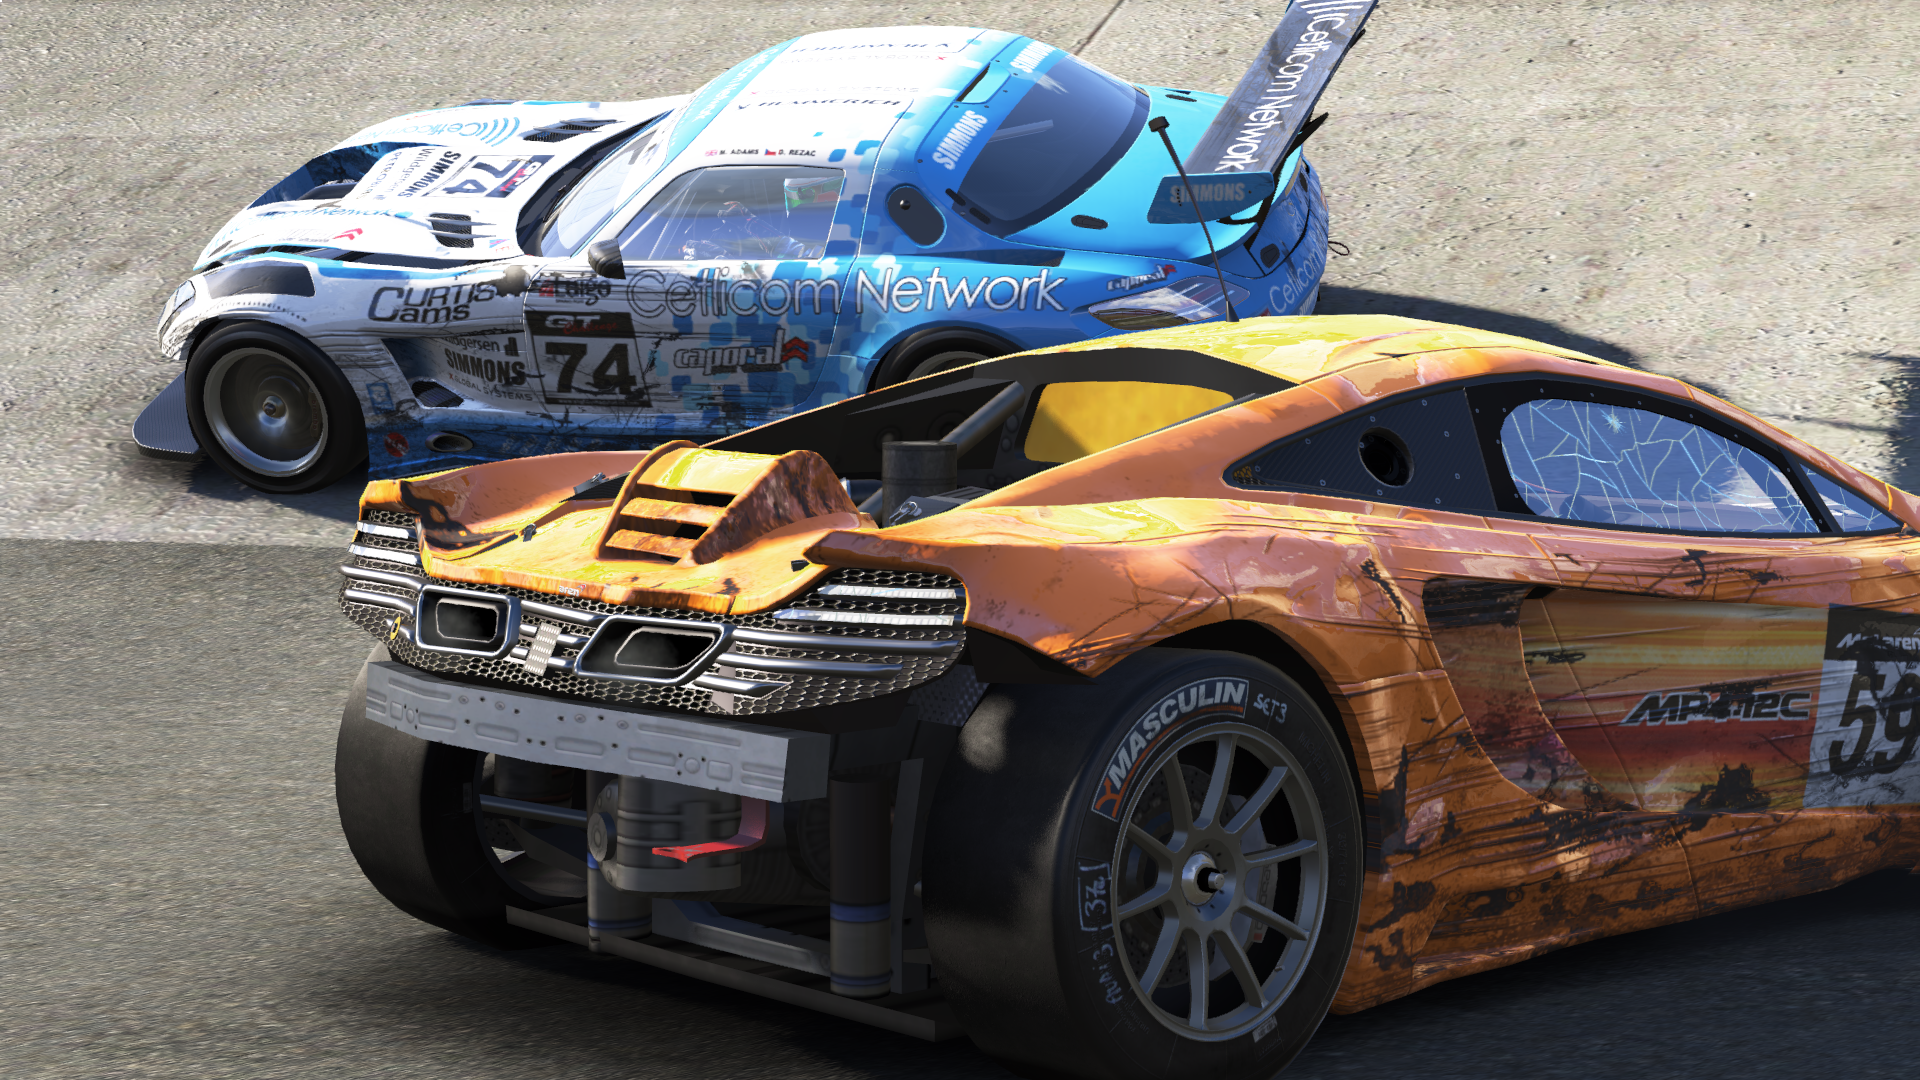 Project Cars Delayed for Wii U until 2015